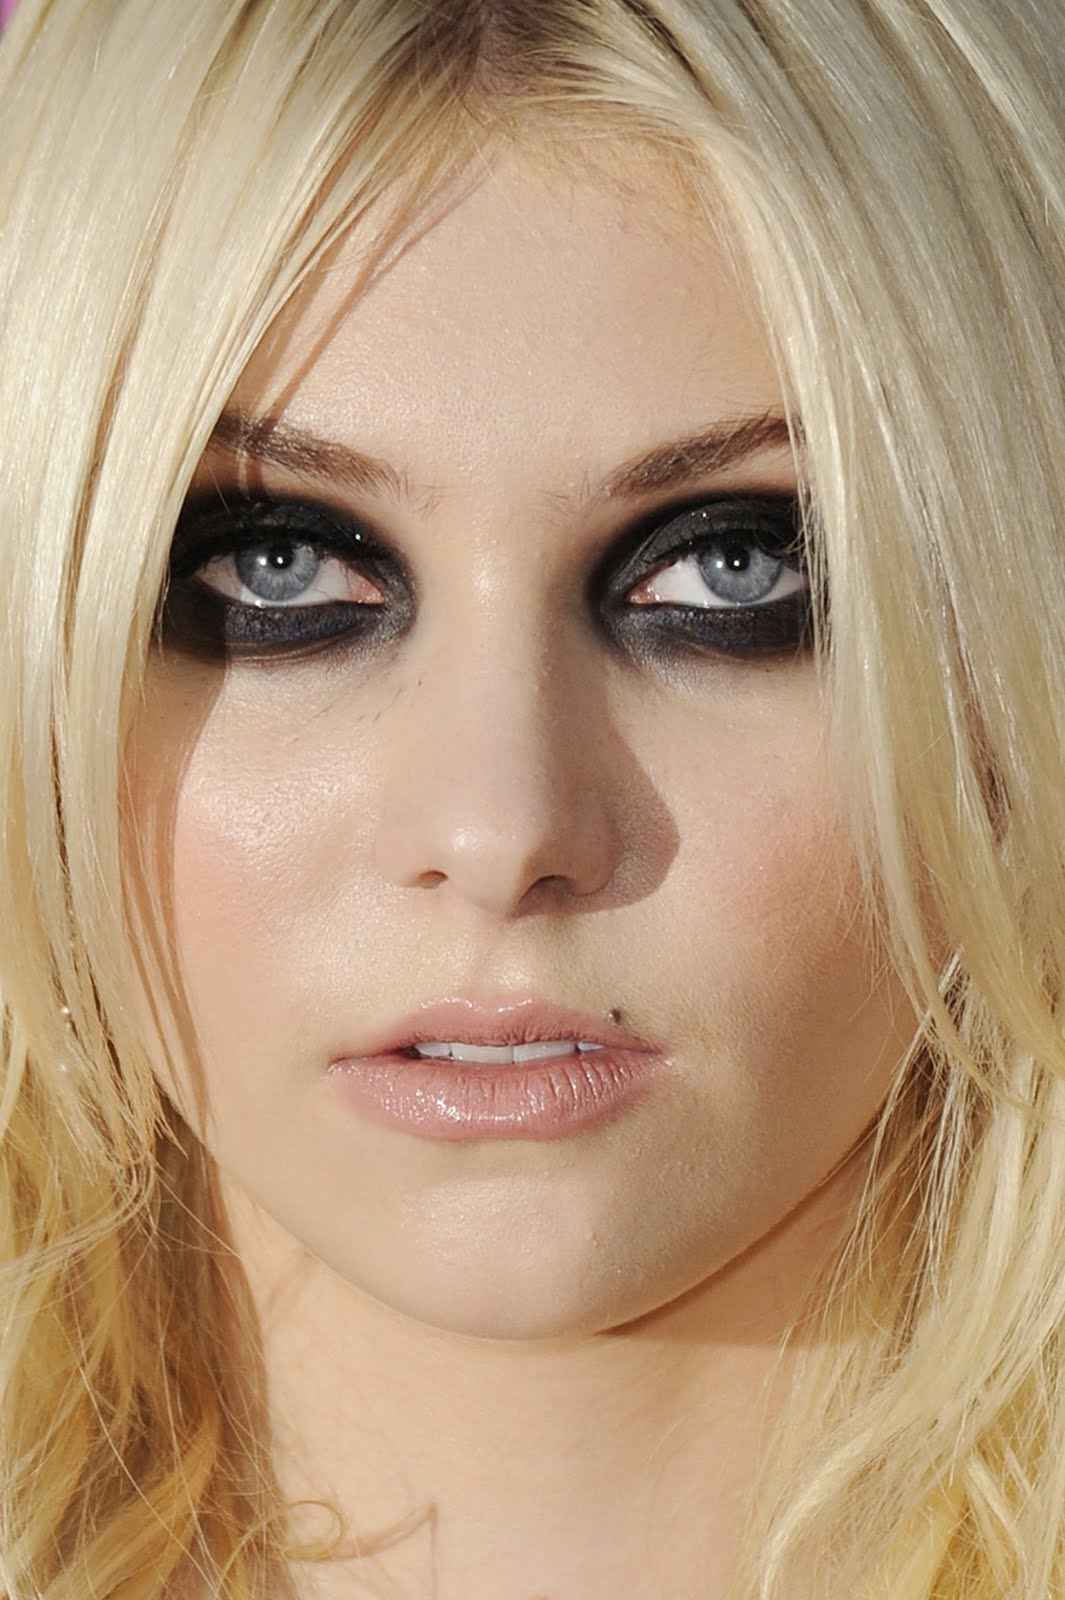 Best Cool Pics Taylor Momsen Make Me Wanna Die Music